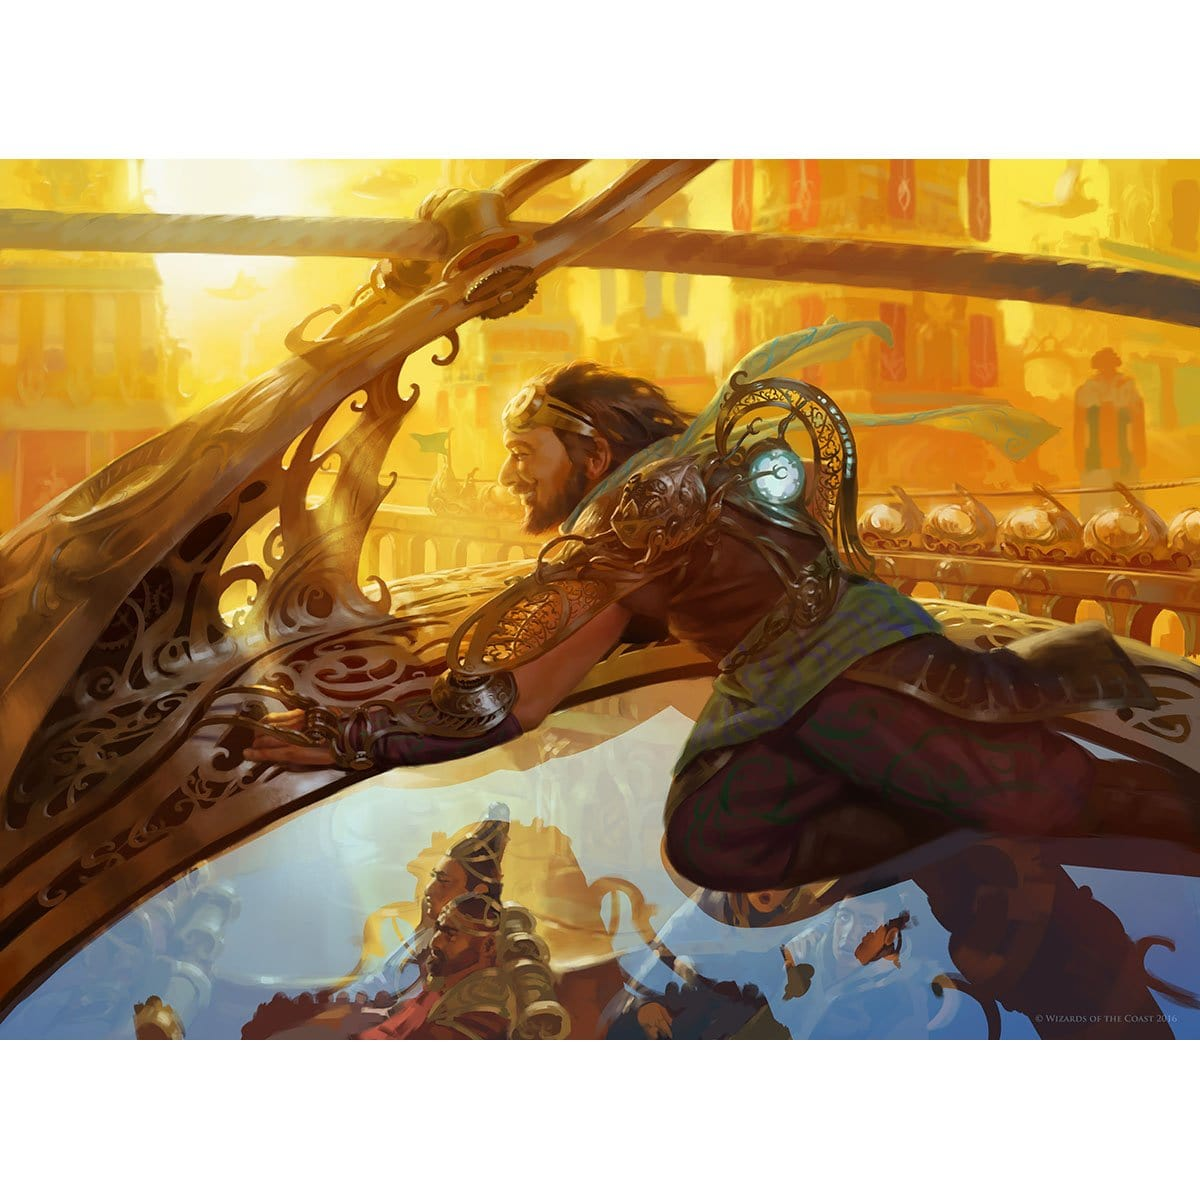 Aether Chaser Print - Print - Original Magic Art - Accessories for Magic the Gathering and other card games